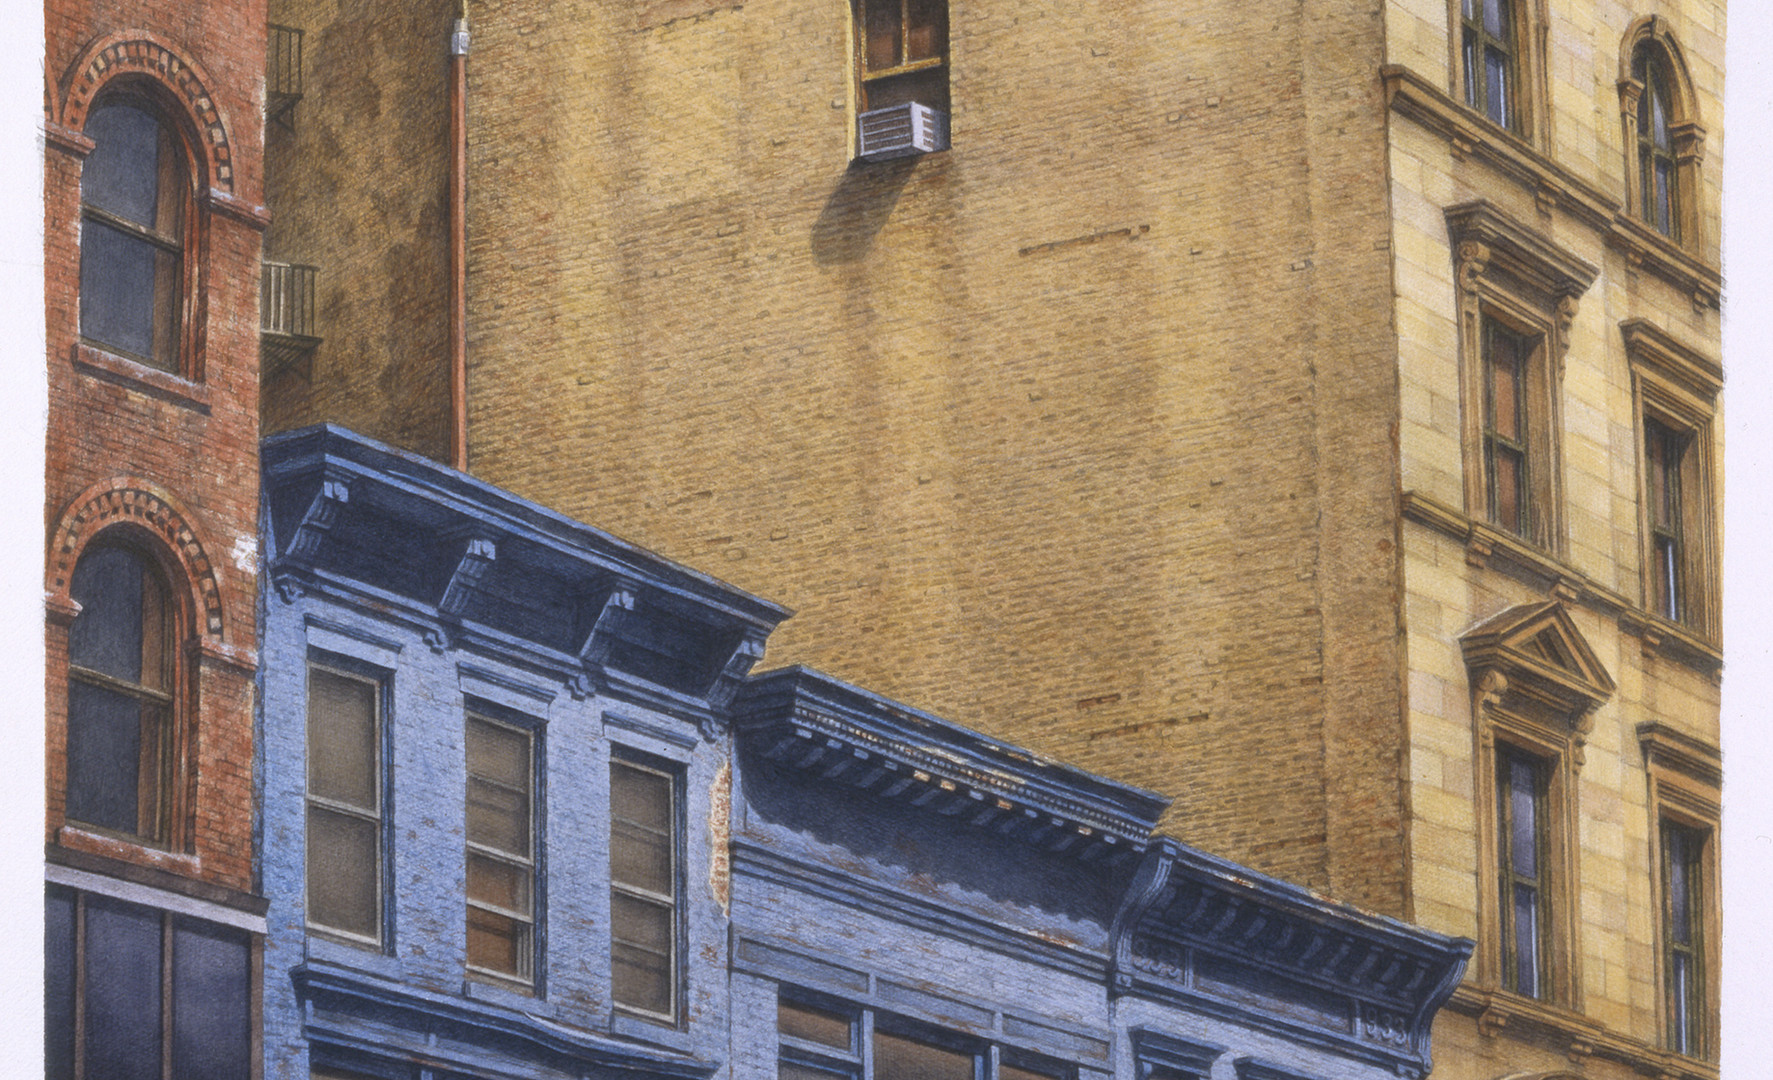 22nd Street and Broadway, 2004